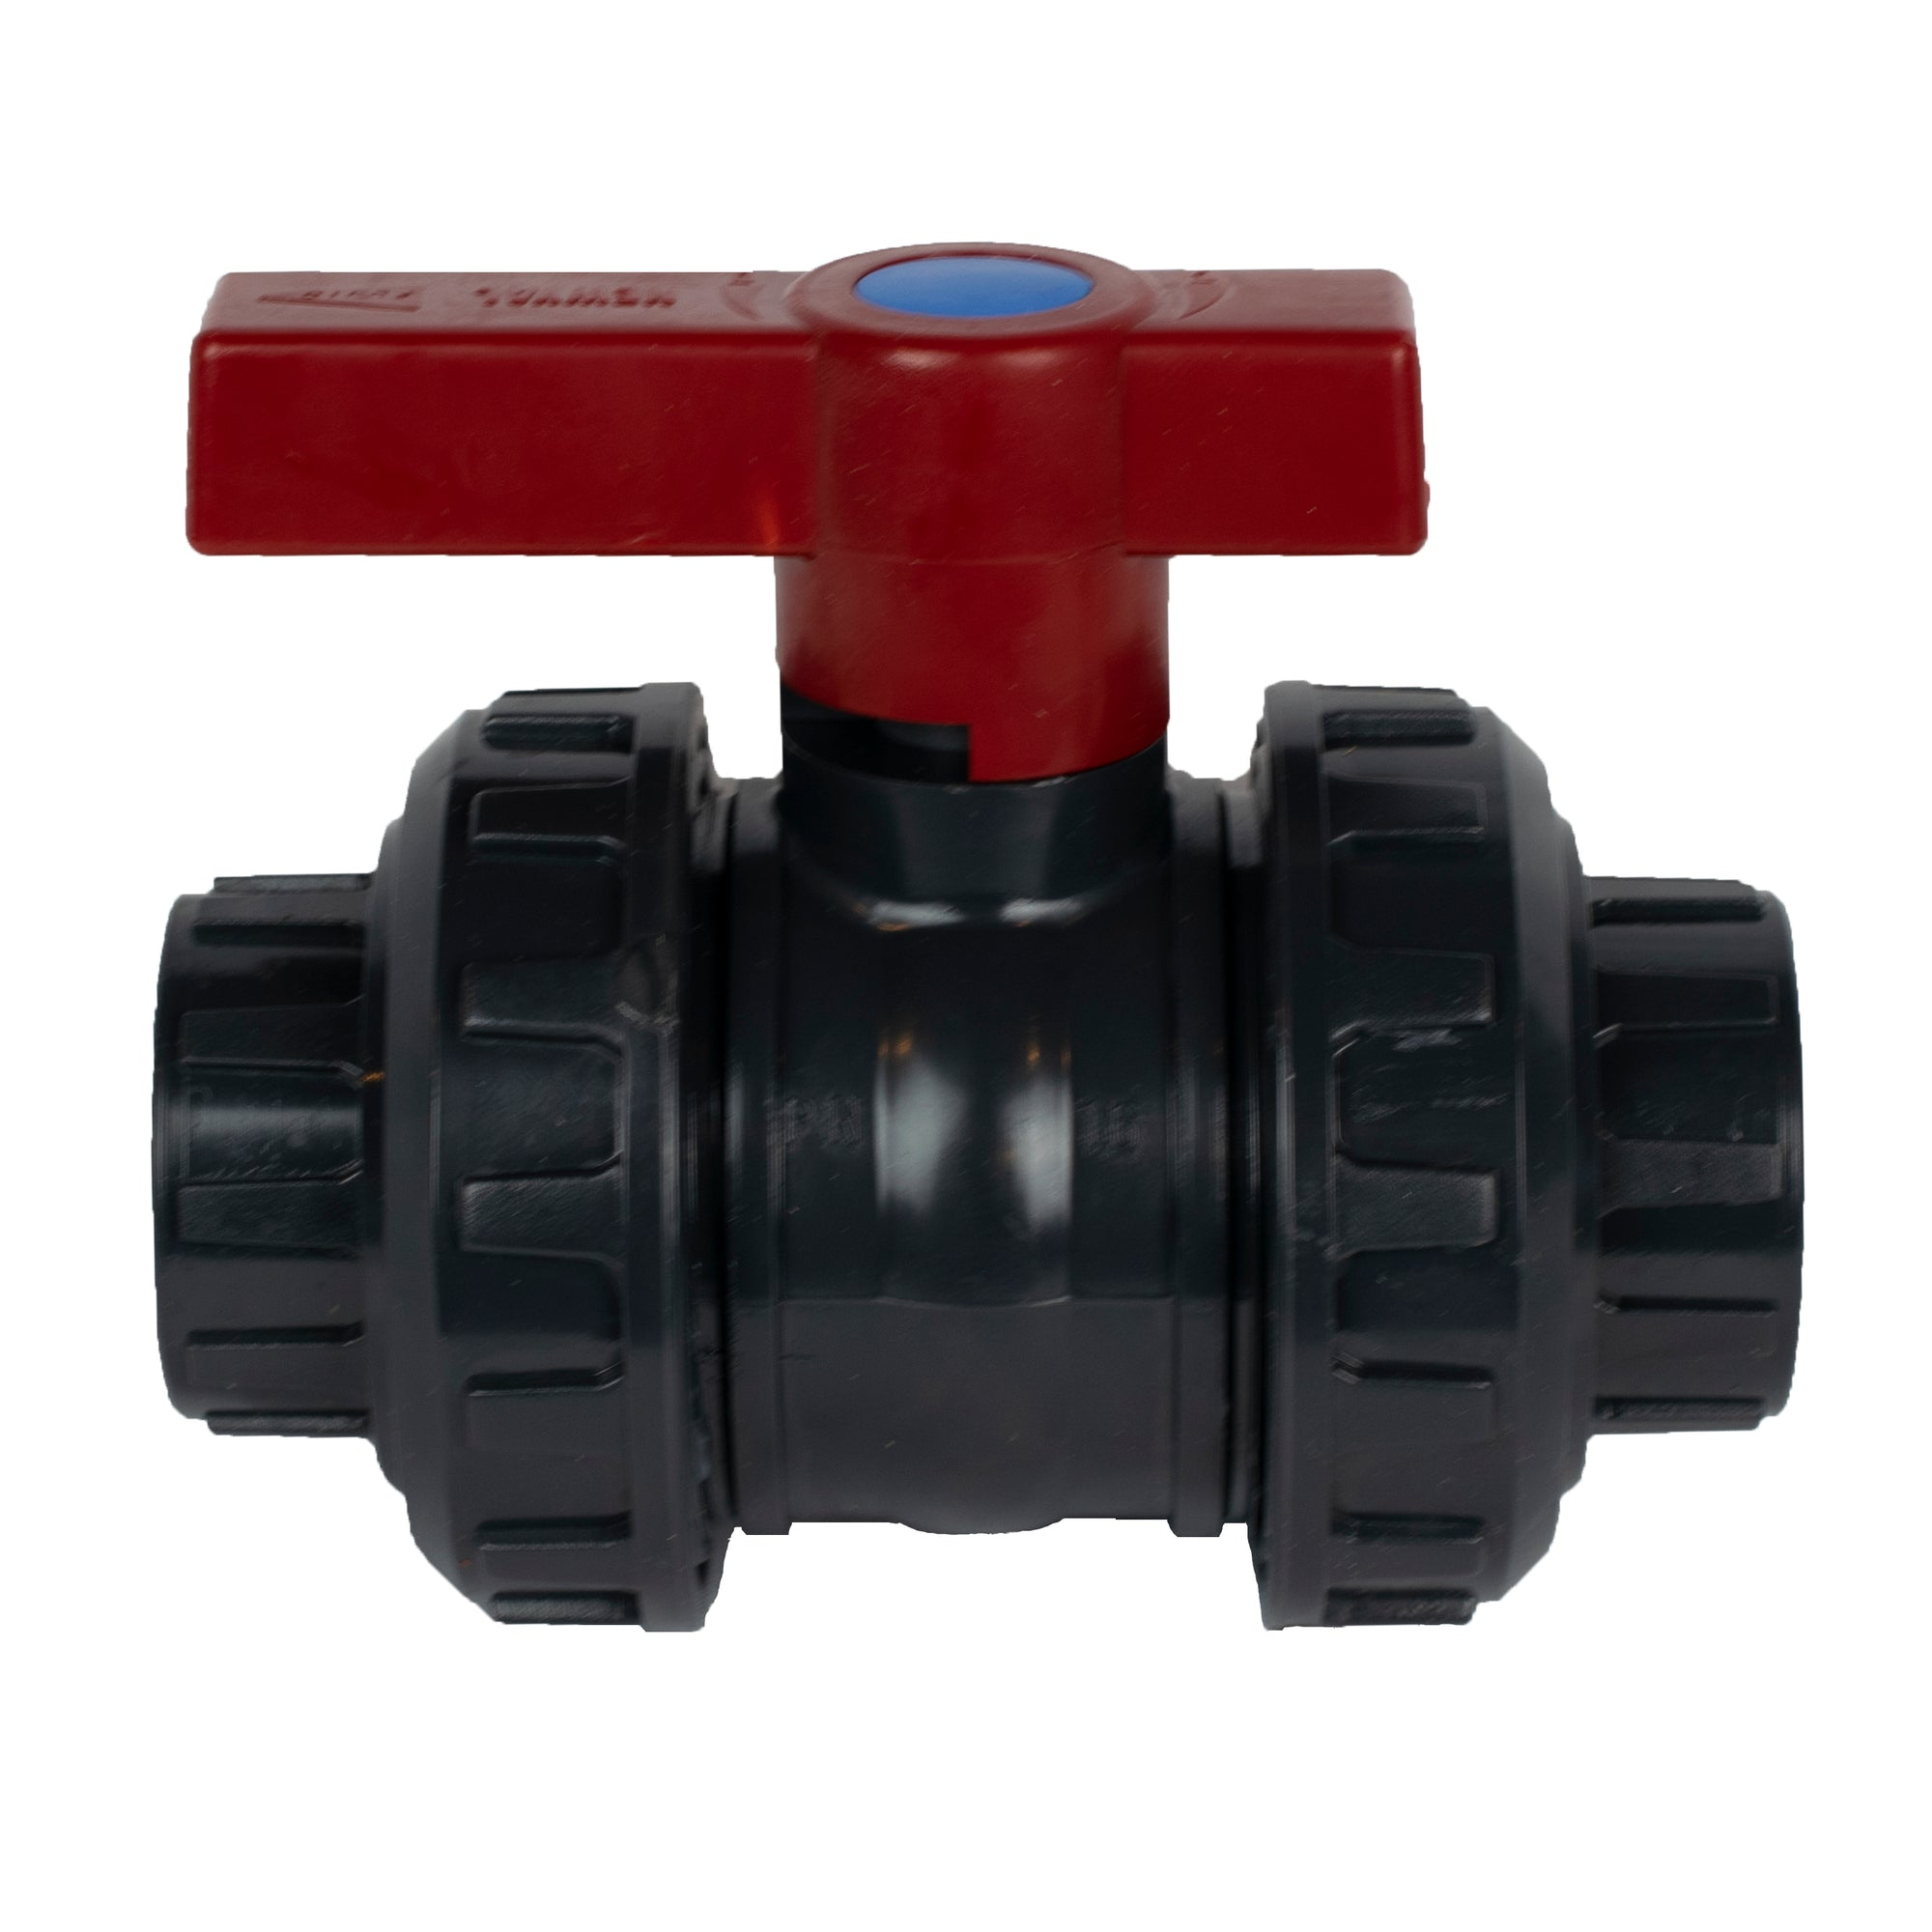 "1"" Cepex True Union Ball Valve"